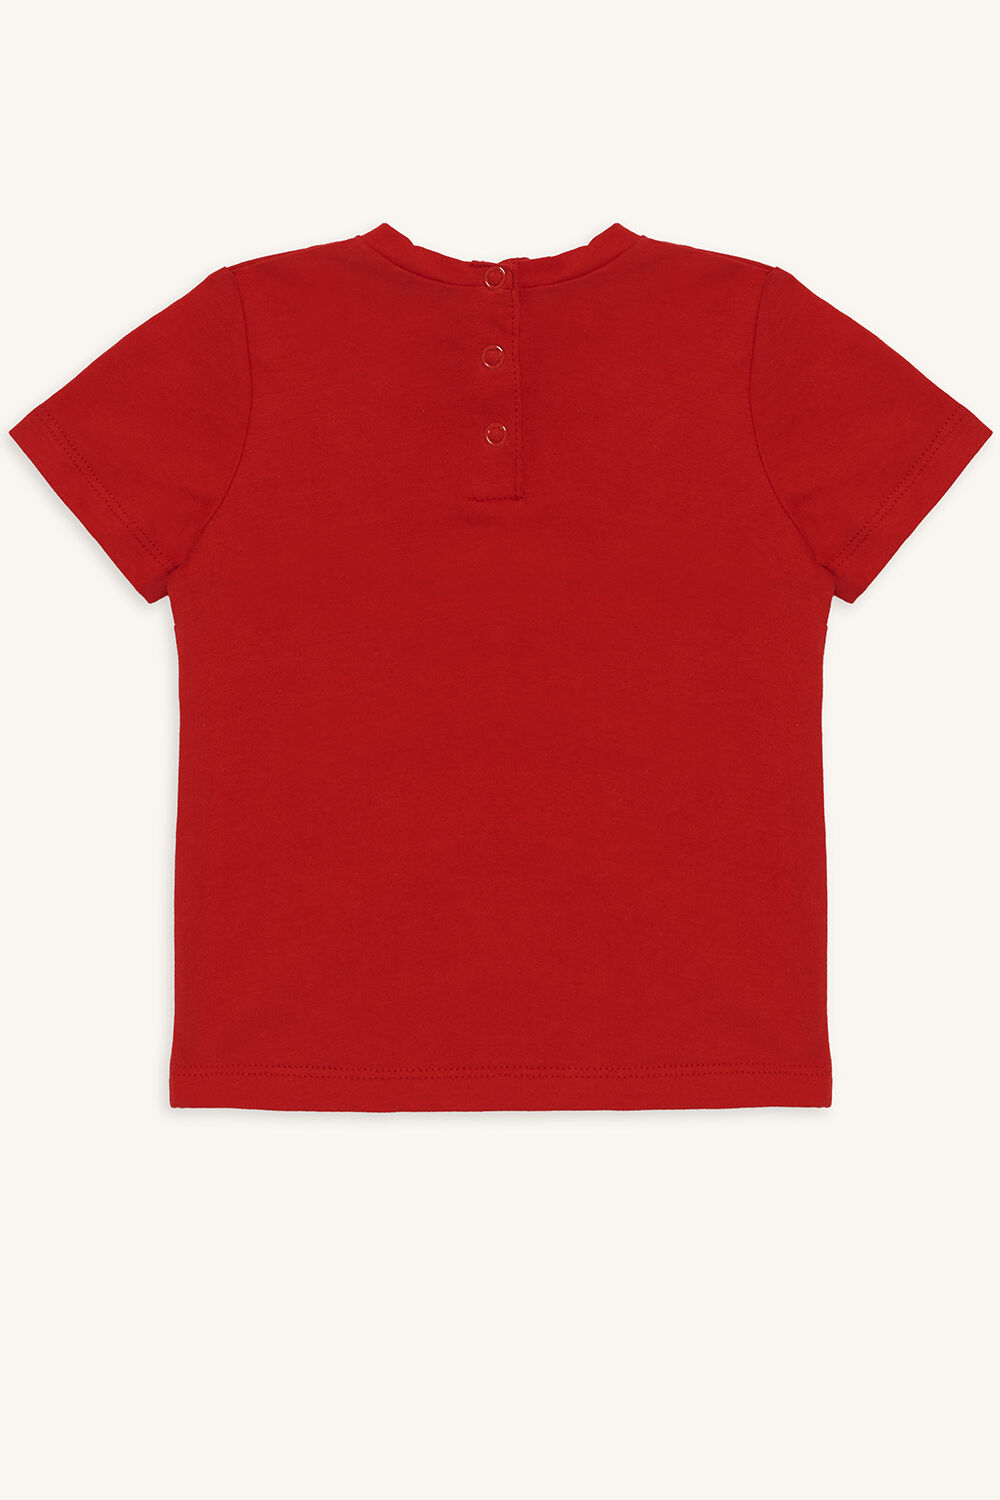 BABY BOY st tropez tee in colour FORMULA ONE